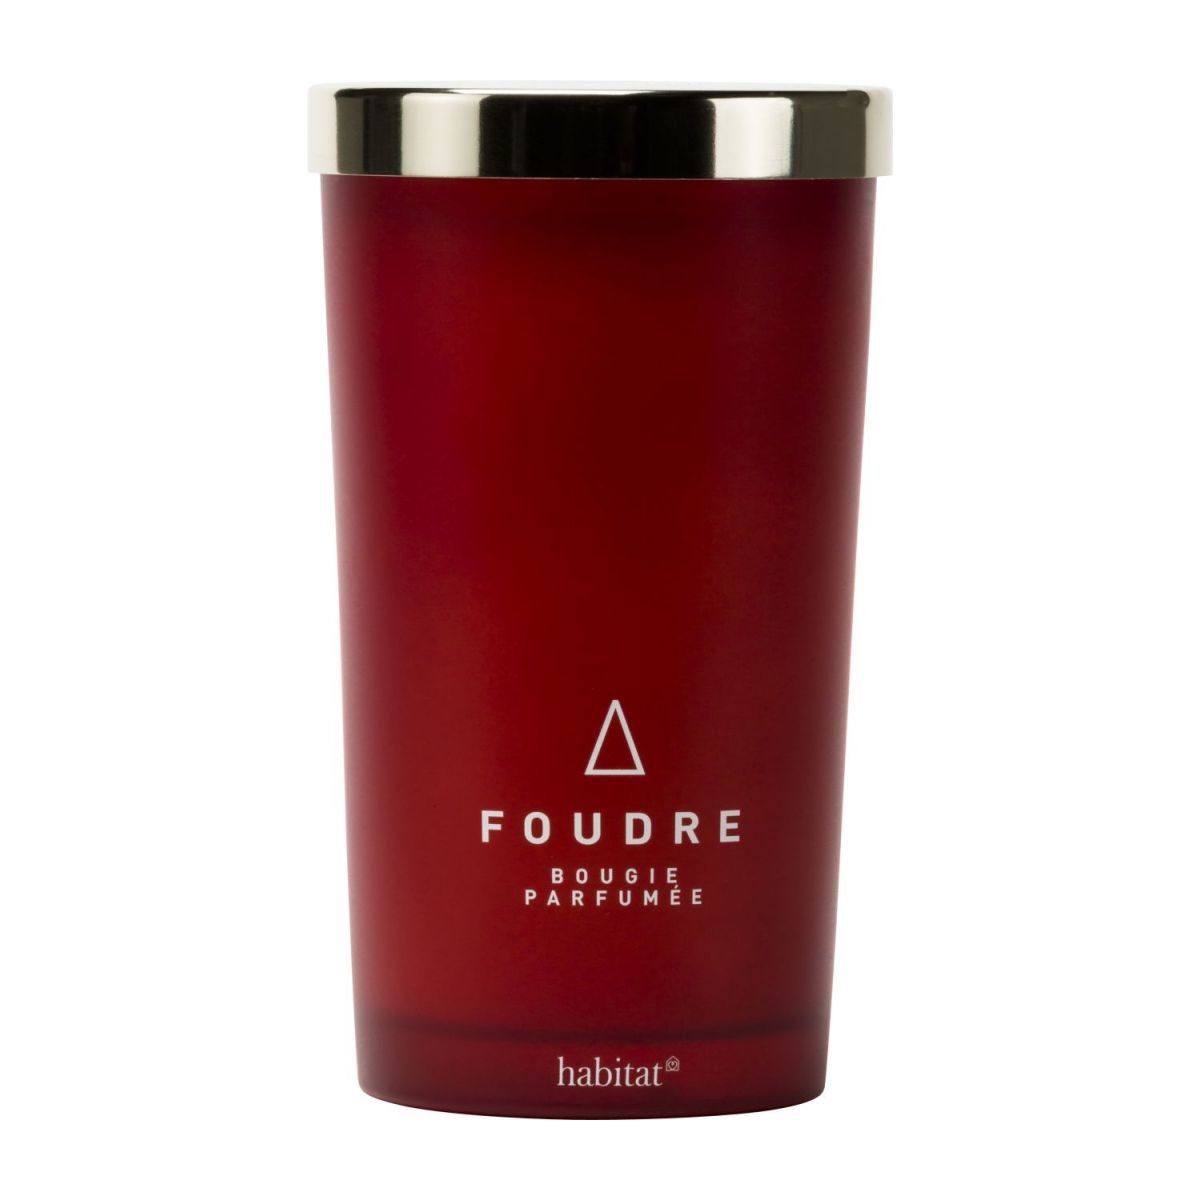 Foudre large scented candle  n°1